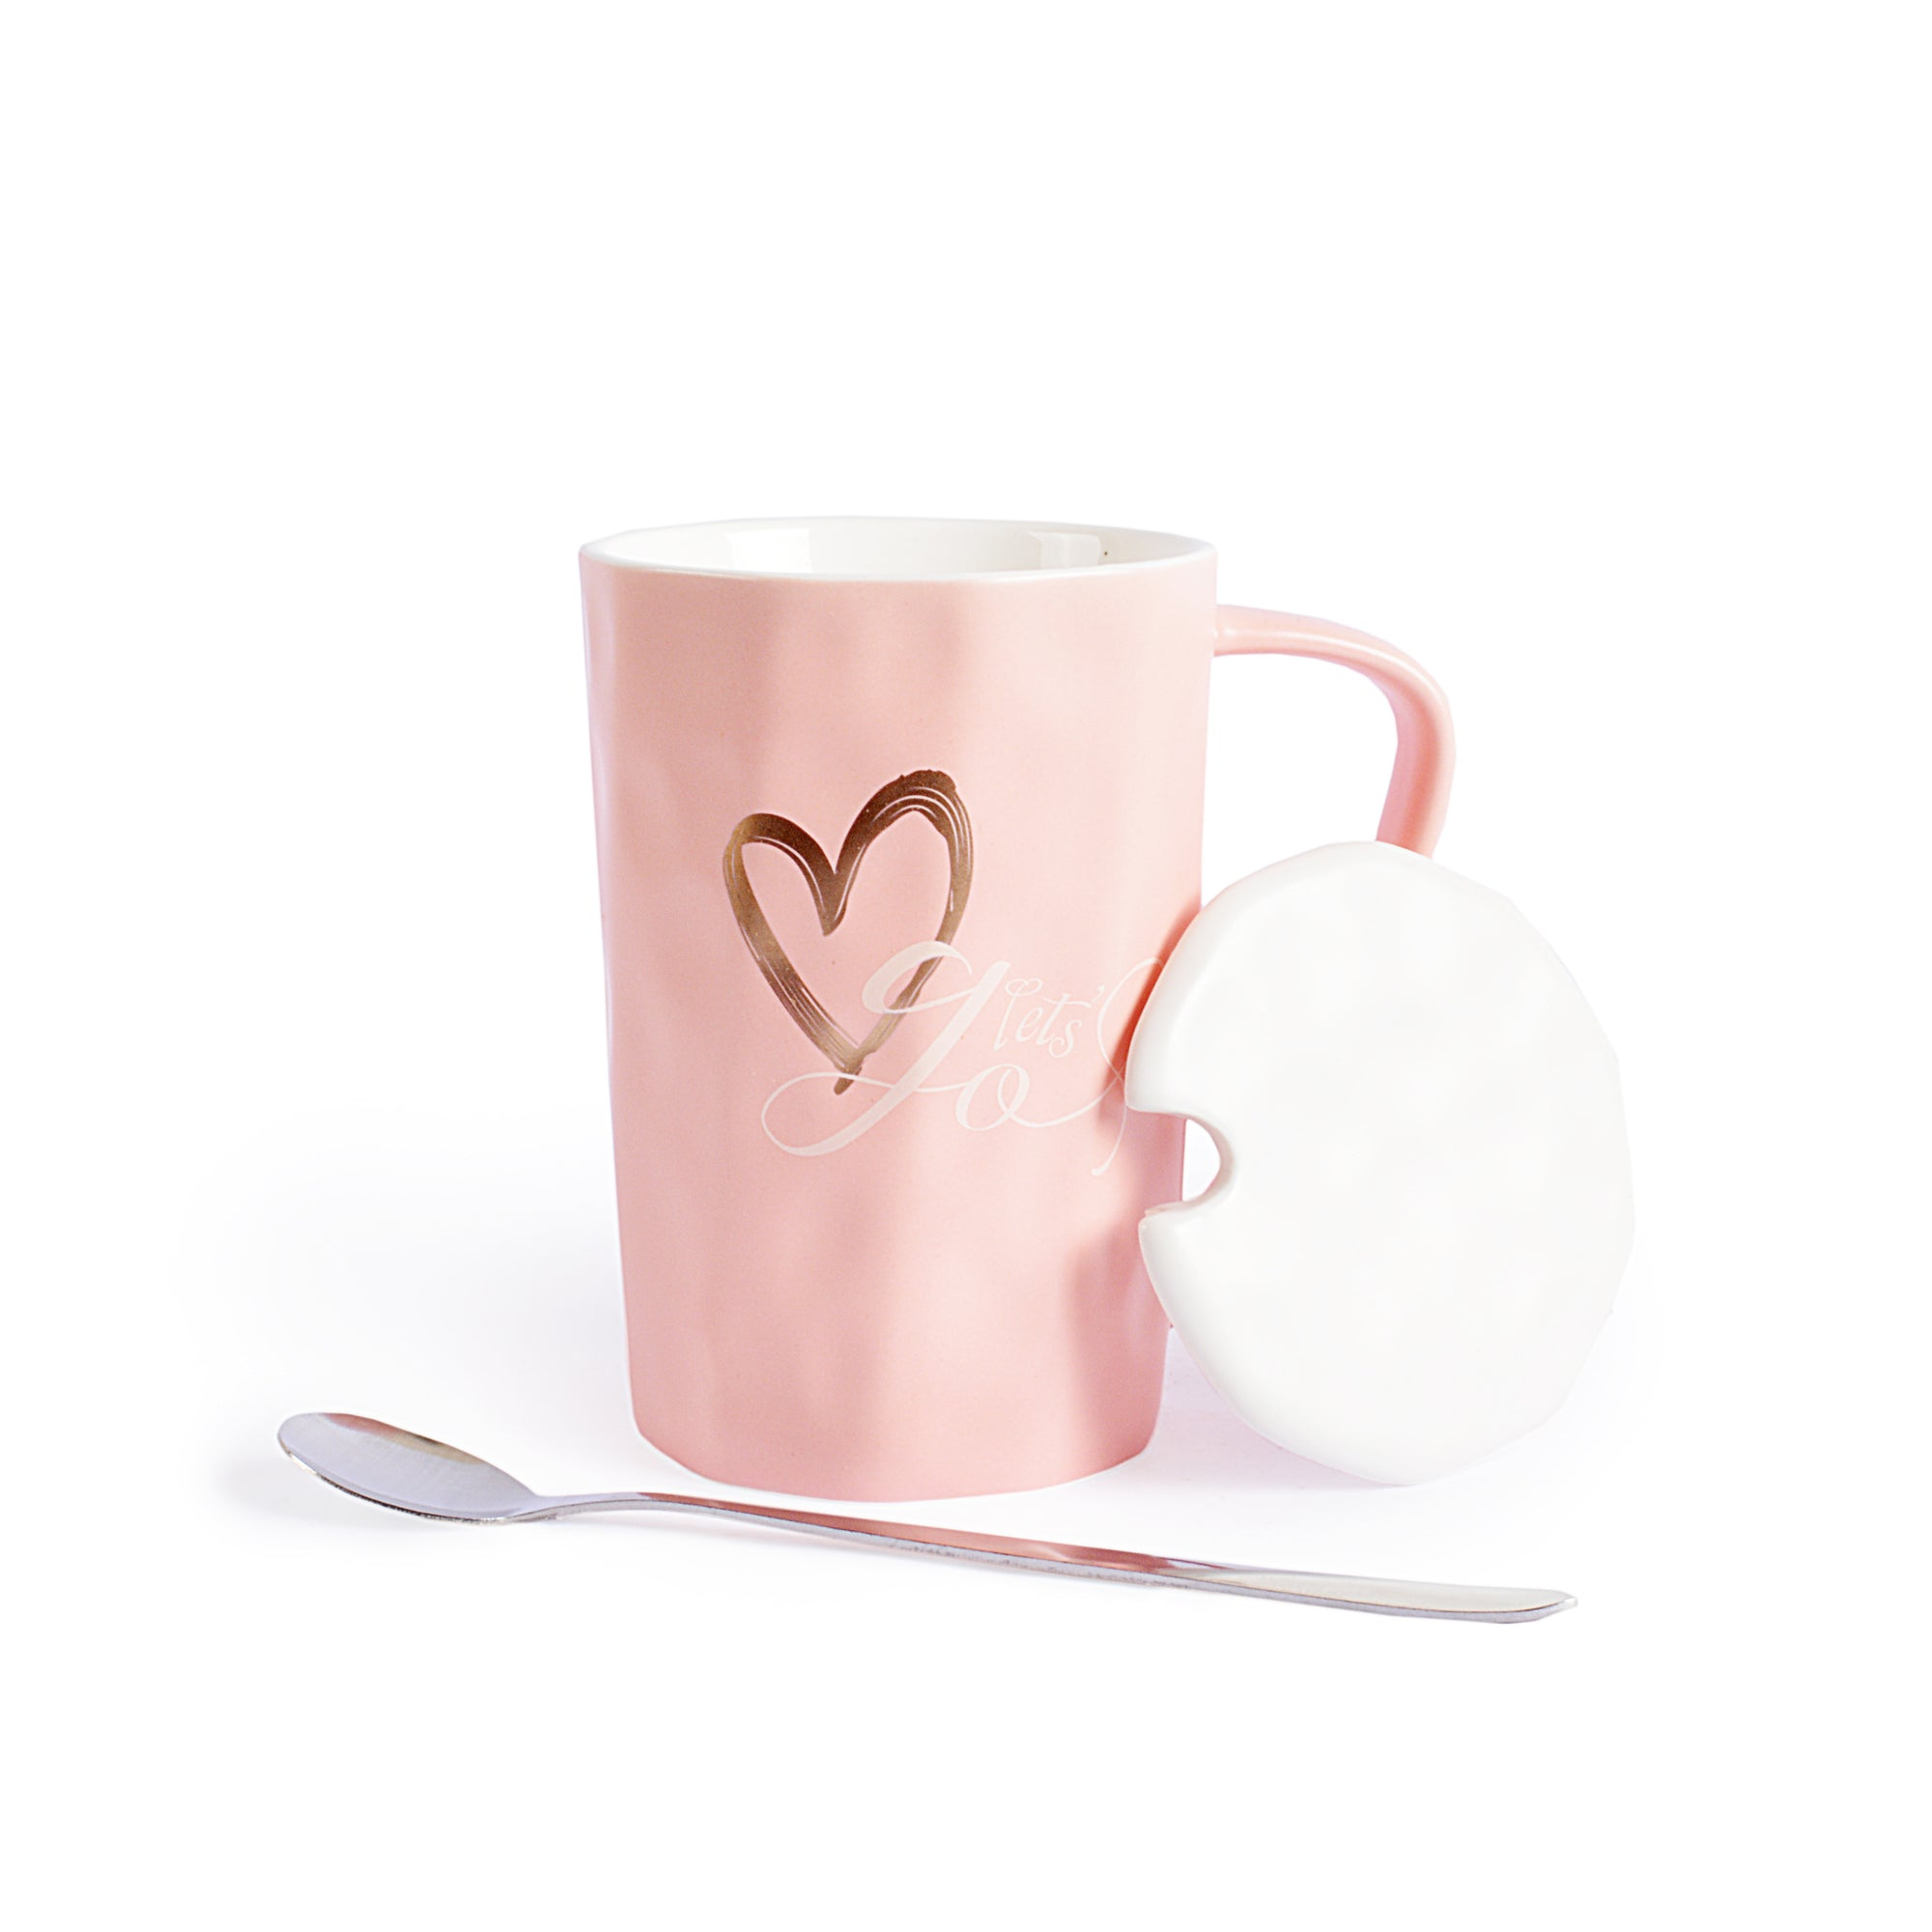 Good Day Design Ceramic Mug With Lid & Spoon